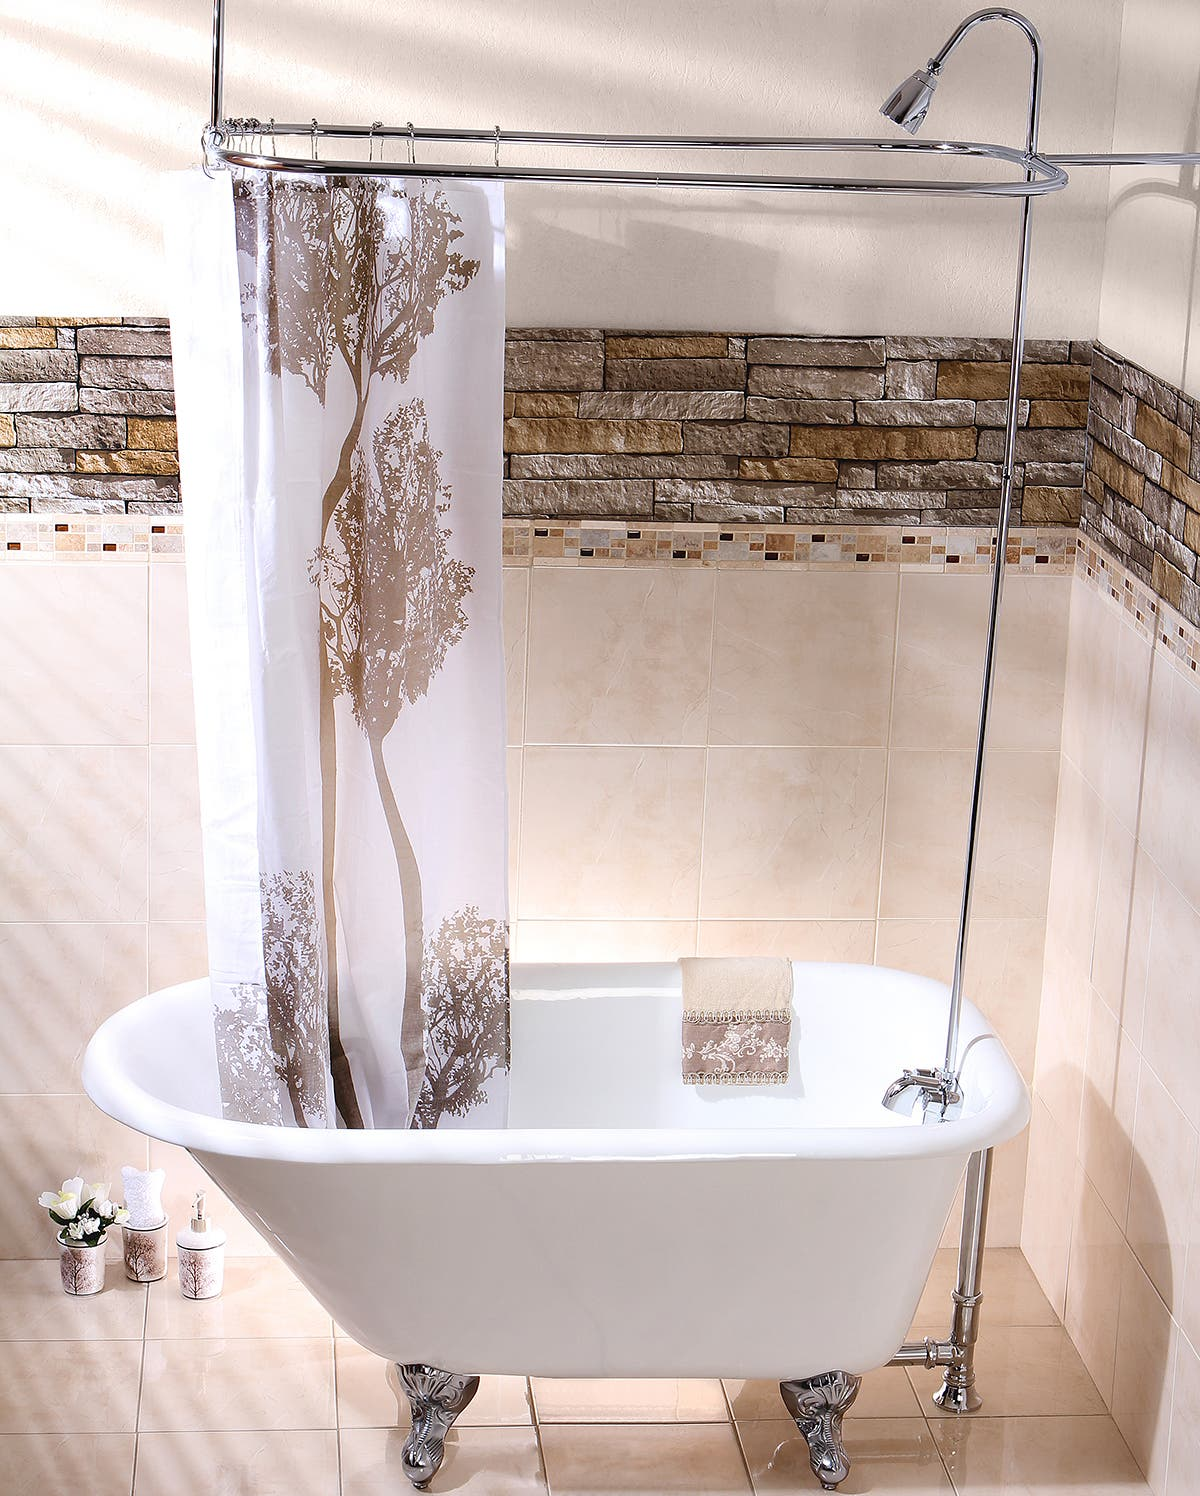 Bathroom Accessories Design Featured Interior Choosing A Shower Curtain For Your Clawfoot Tub